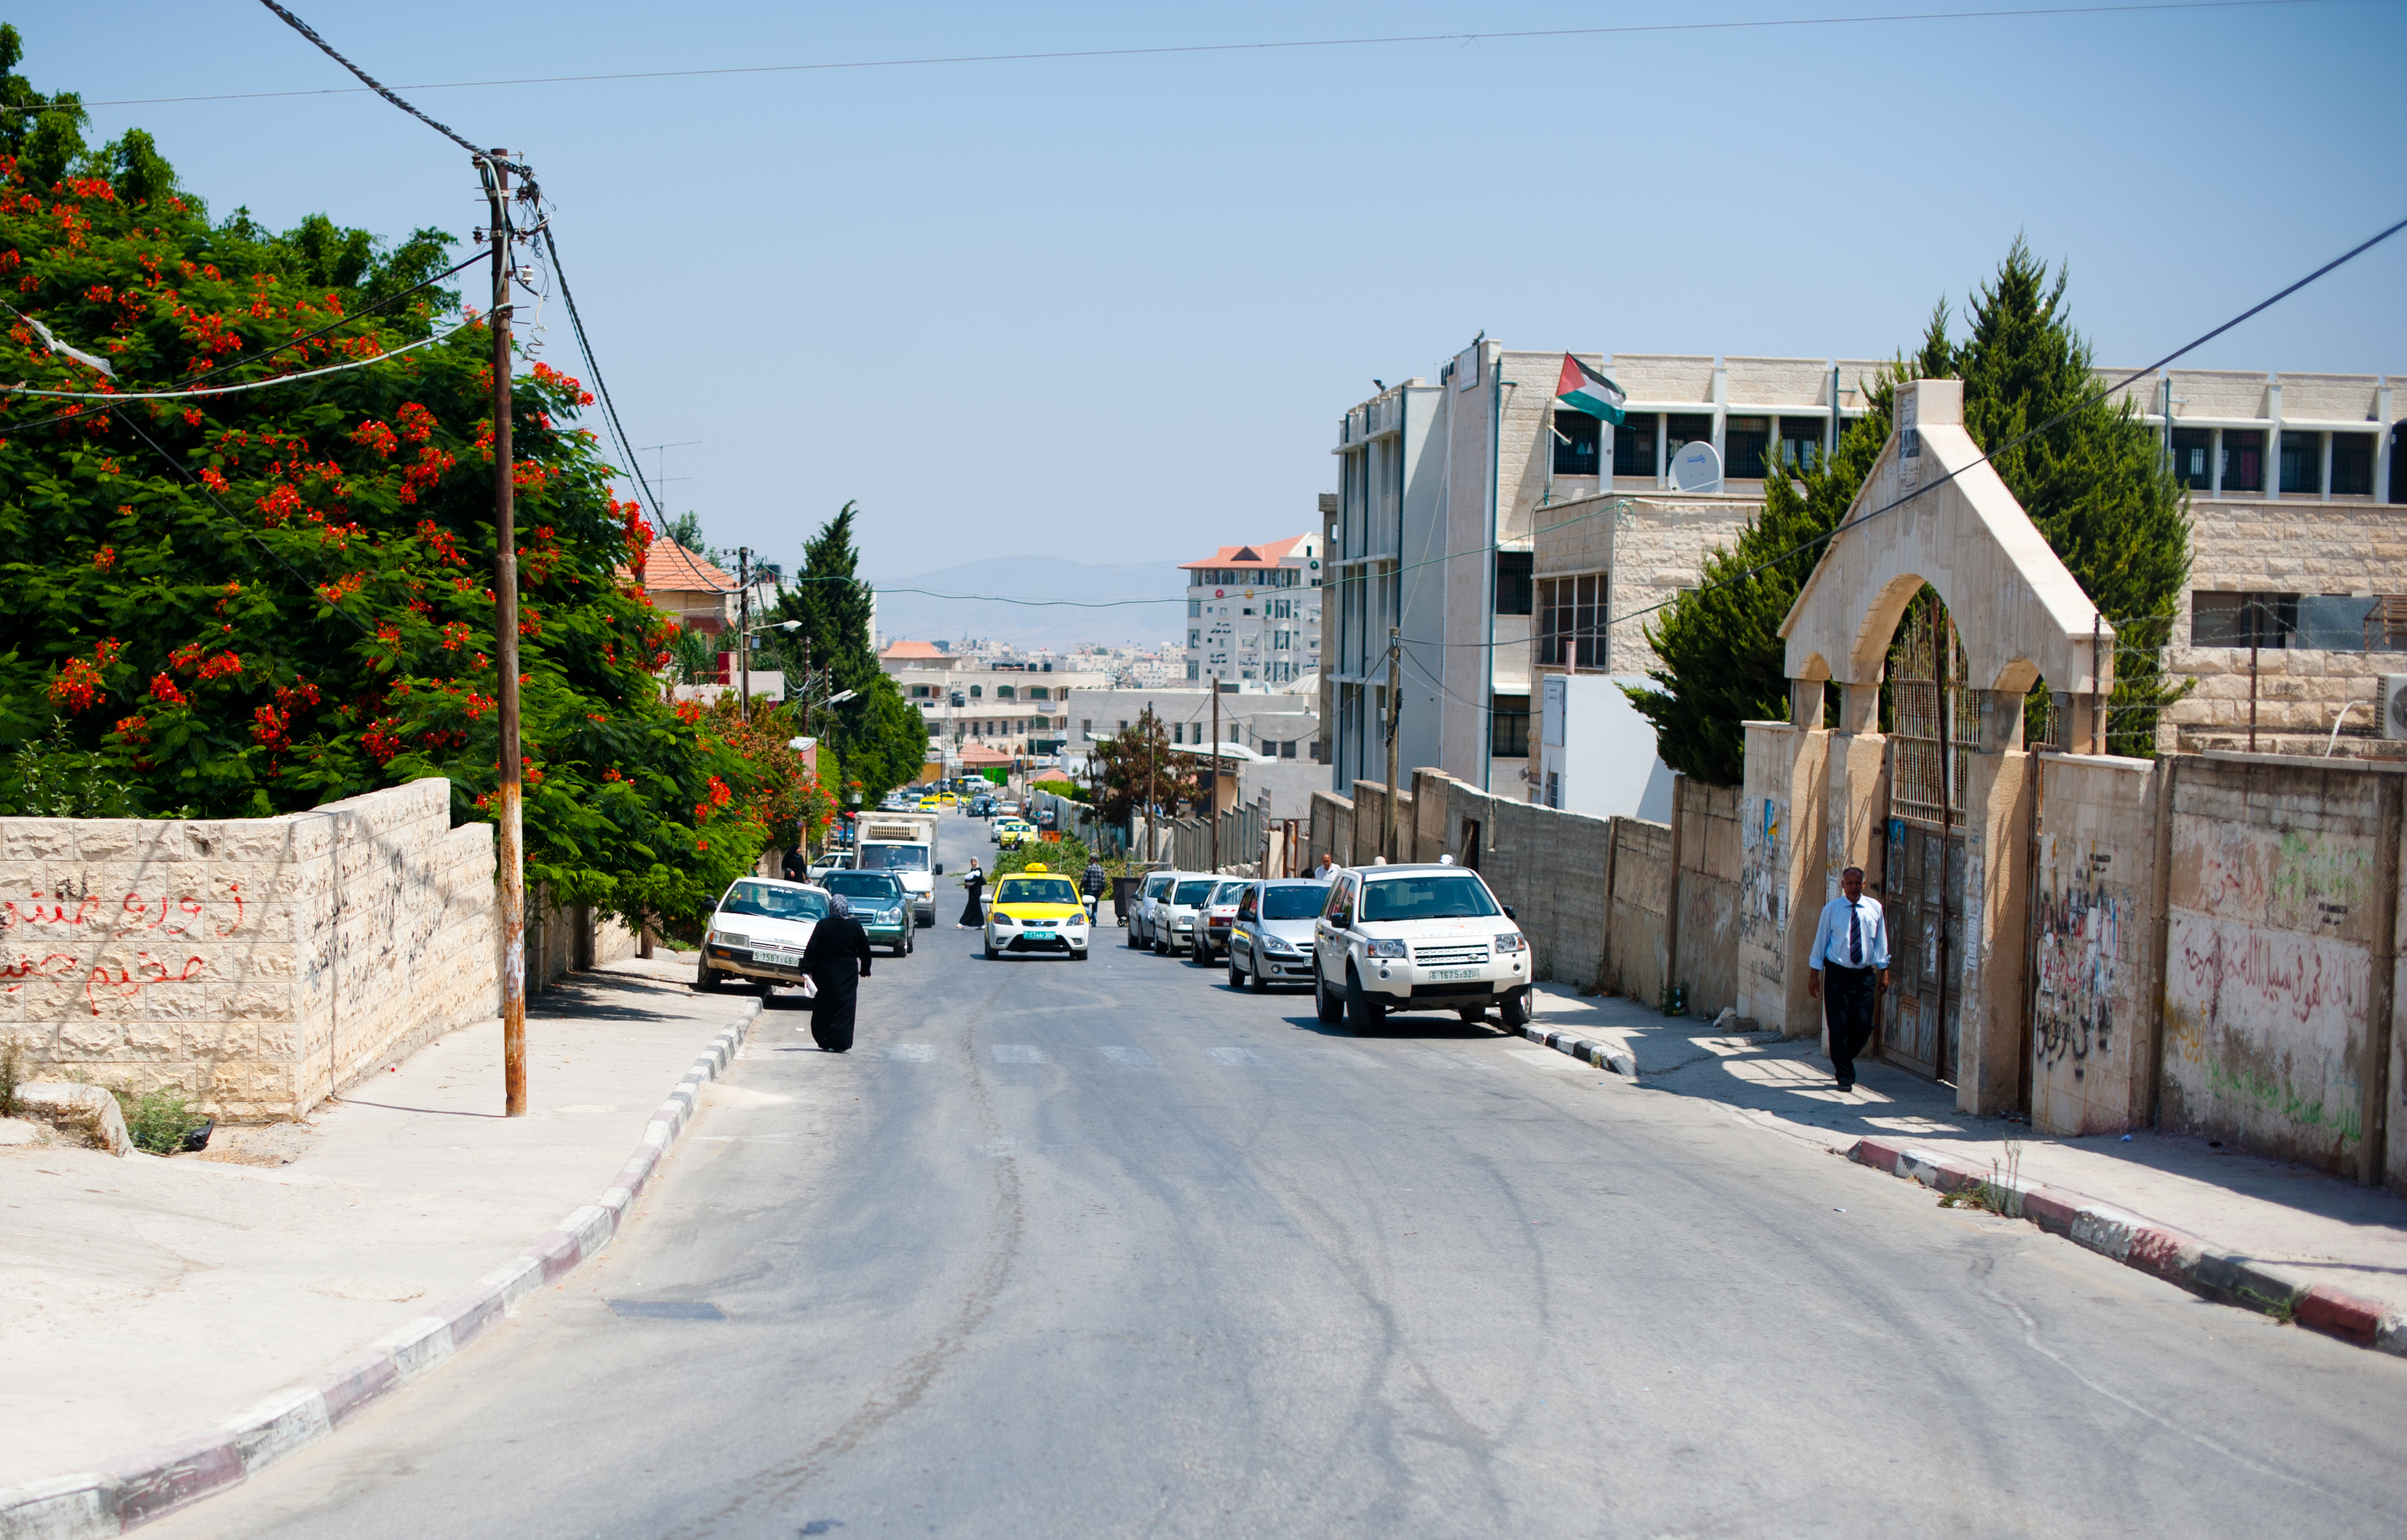 A street in the City of Jenin from 2011. The city includes a modern university and the refugee camp to which some residents are relegated.